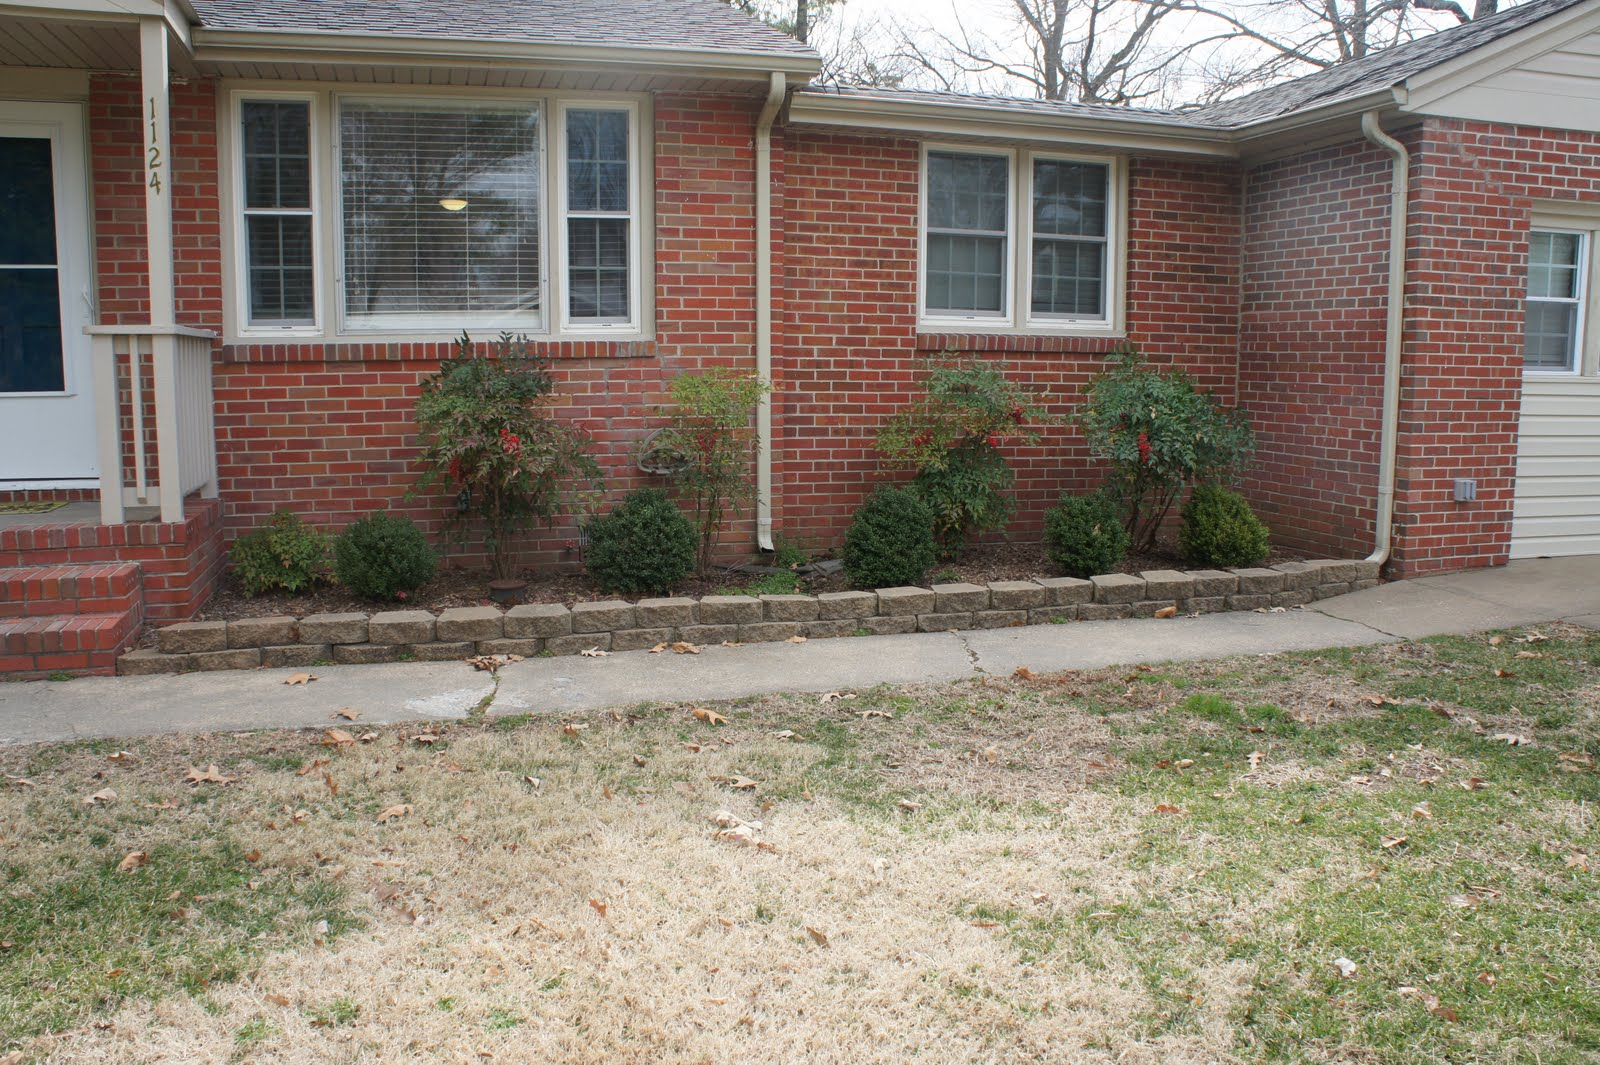 Virginia beach housewife landscaping for dummies for Landscaping for dummies